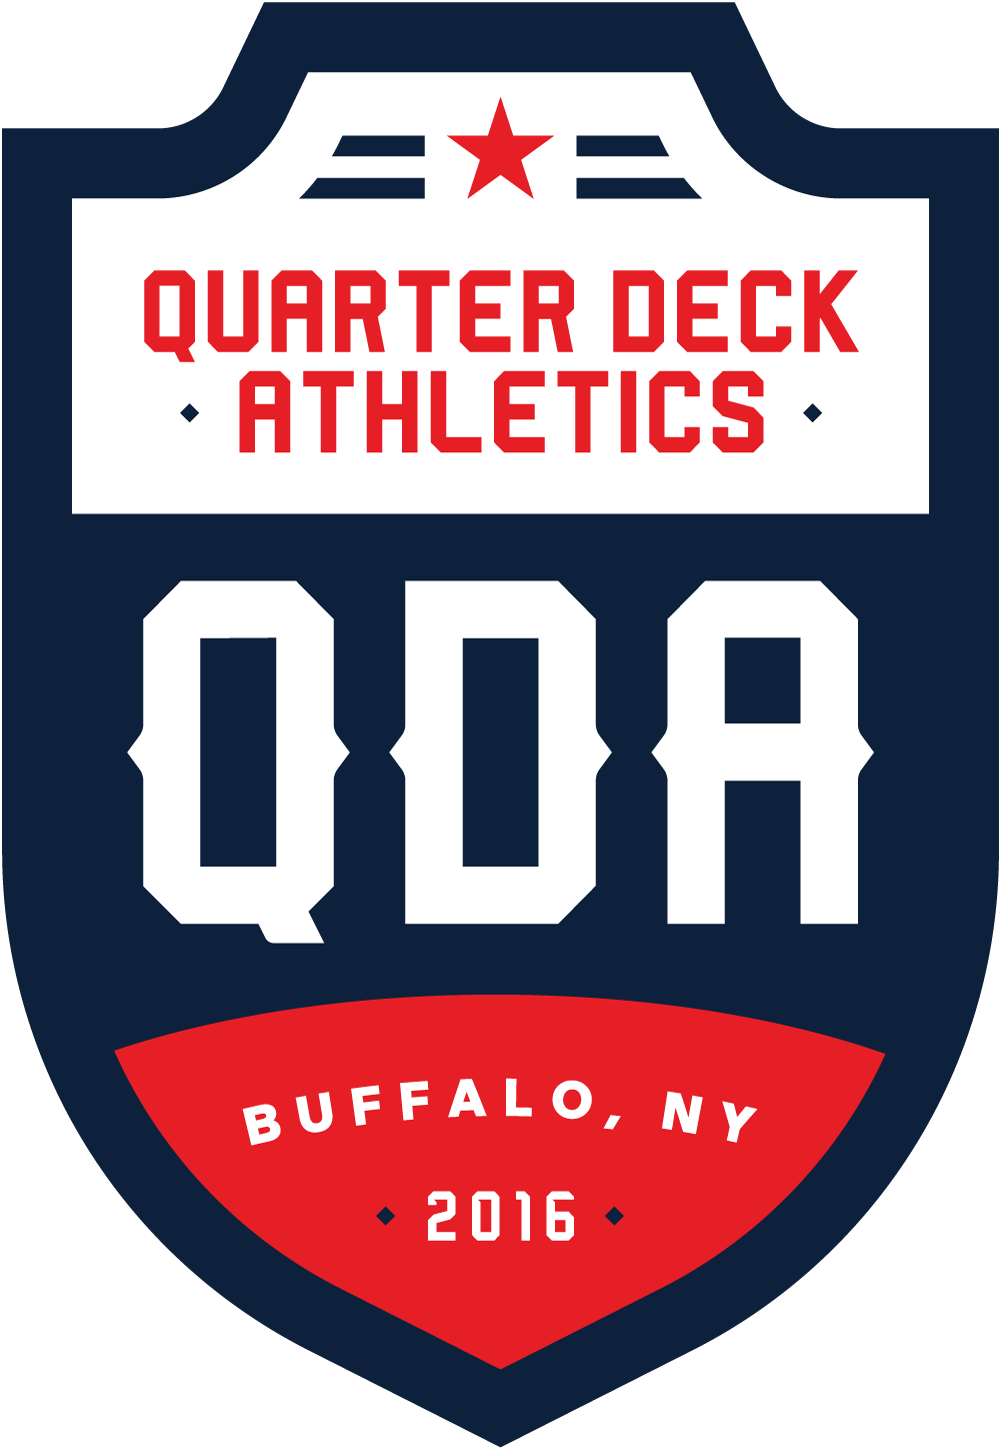 Quarter Deck Athletics: CrossFit Gym, Chiropractic, and Nutrition in Buffalo, N.Y.